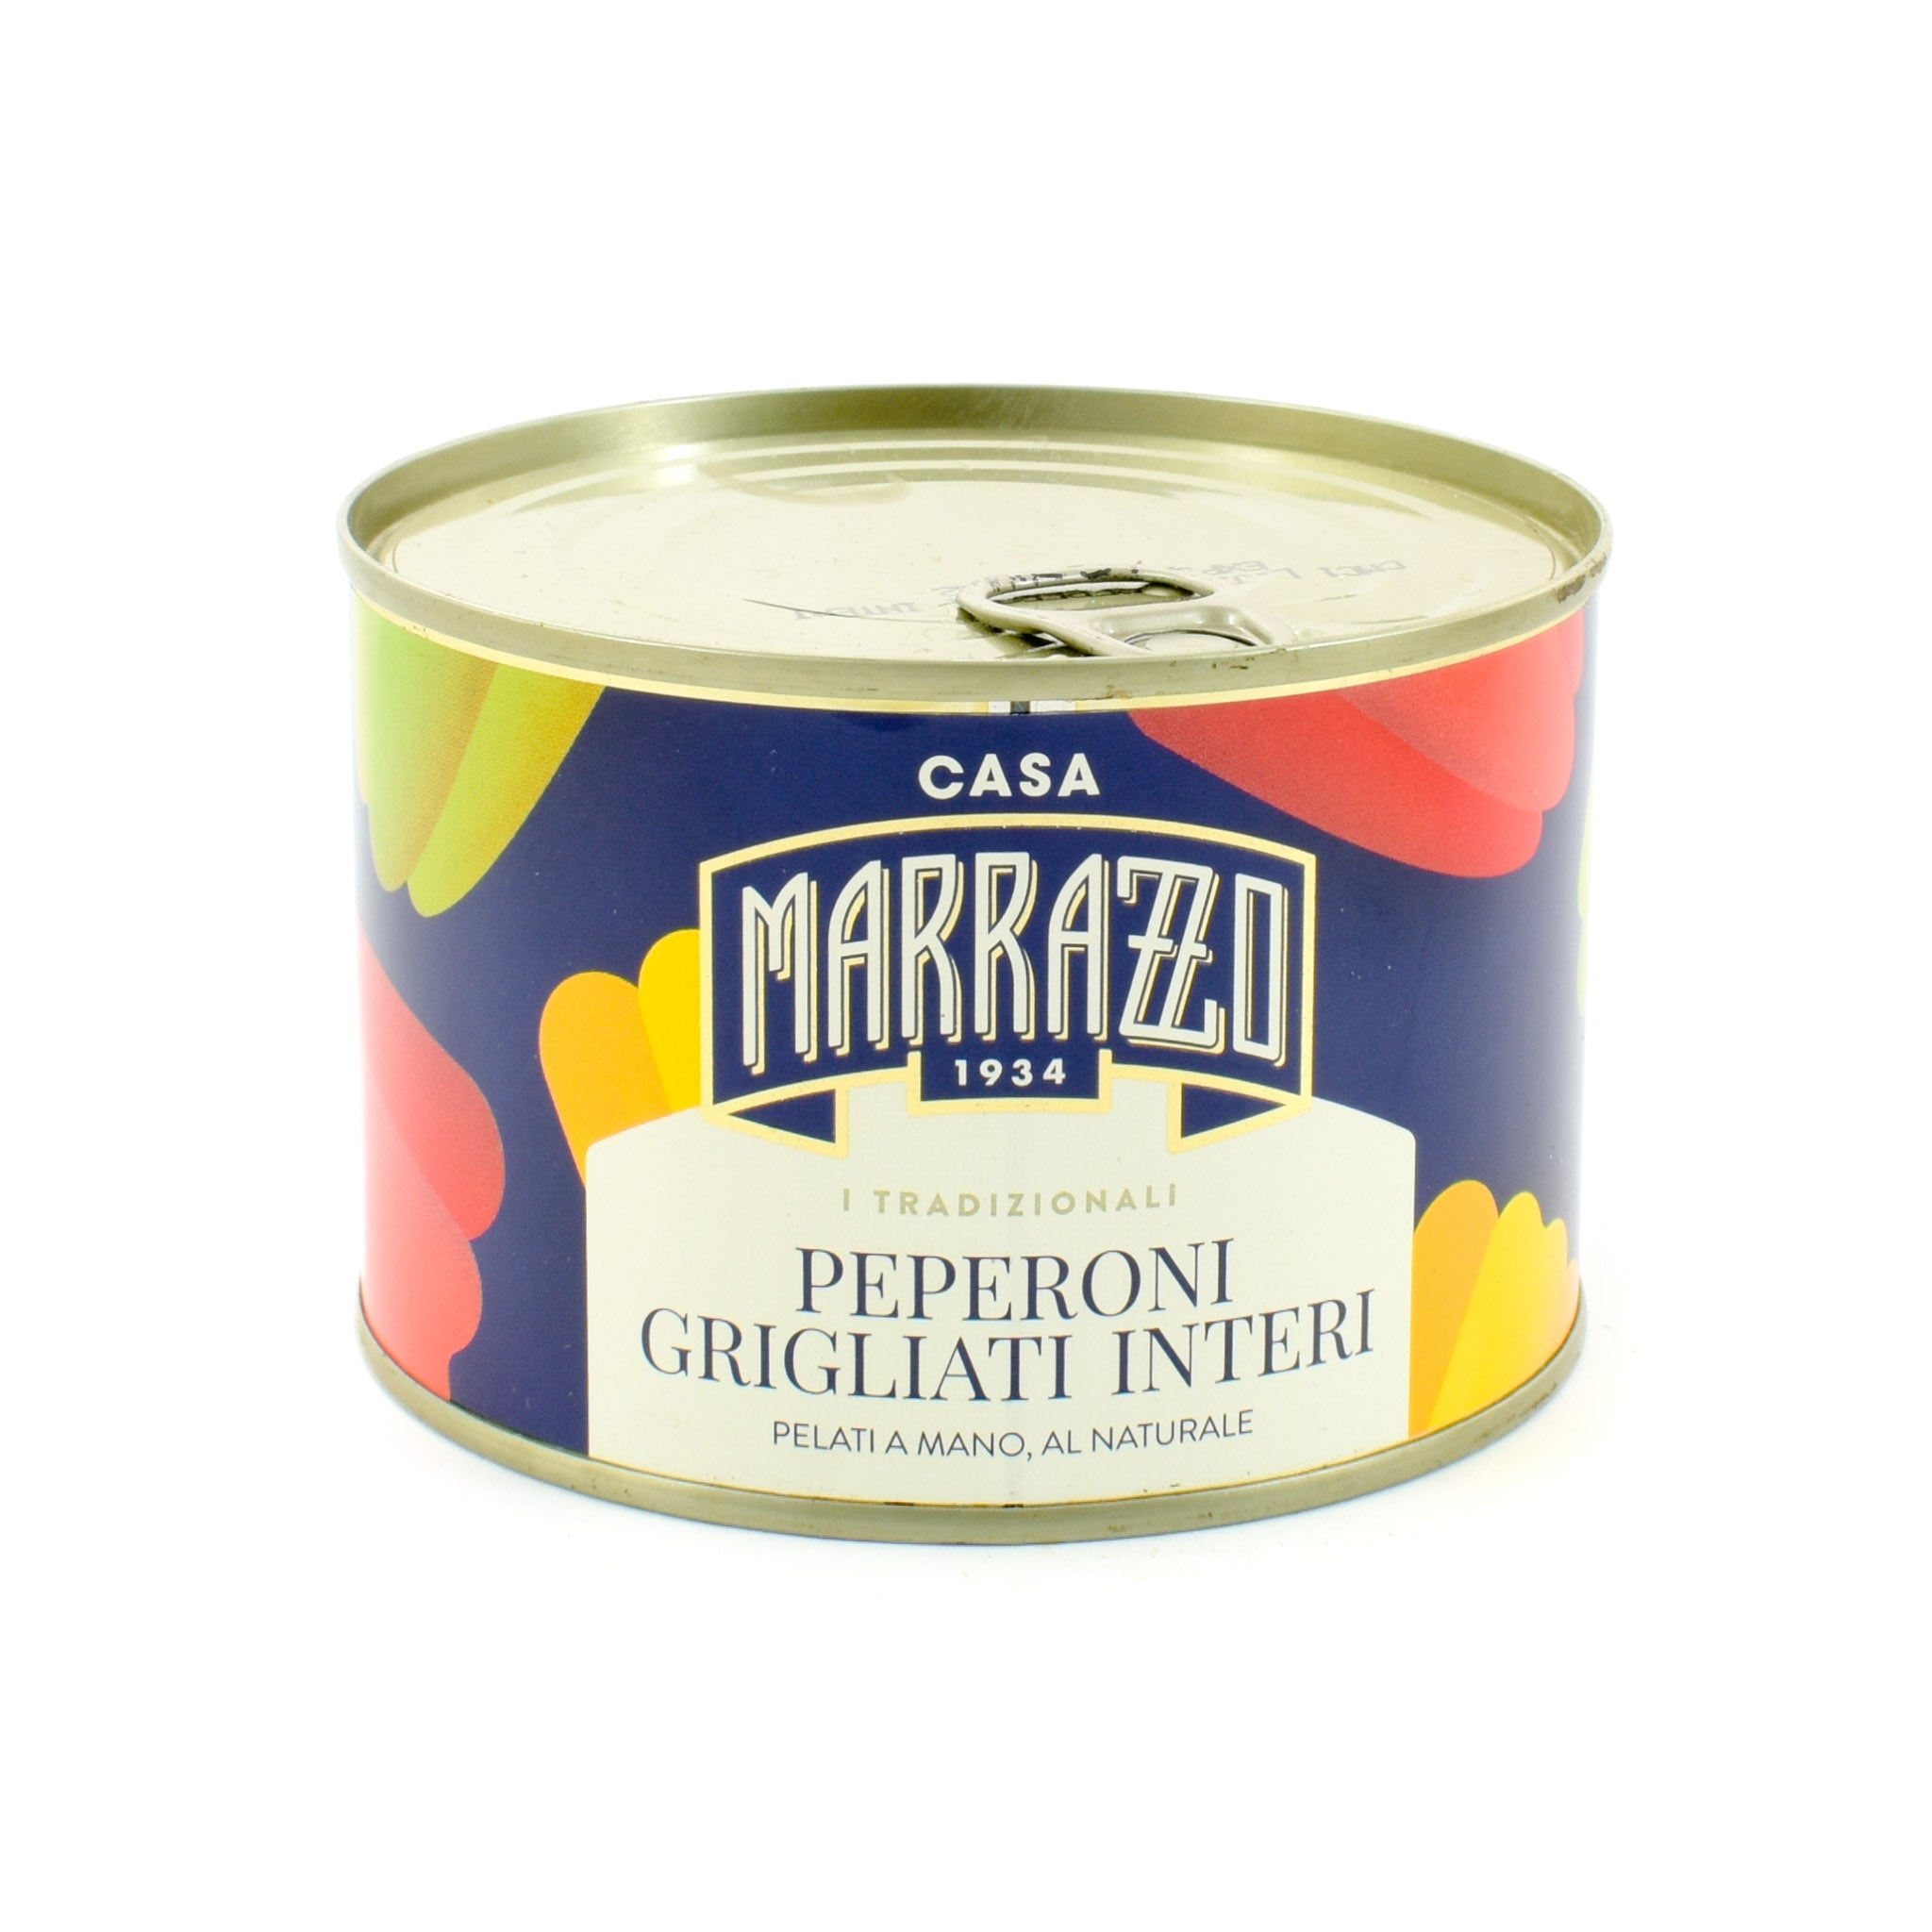 Casa Marrazzo Whole Grilled Hand-Peeled Peppers in Brine 420g